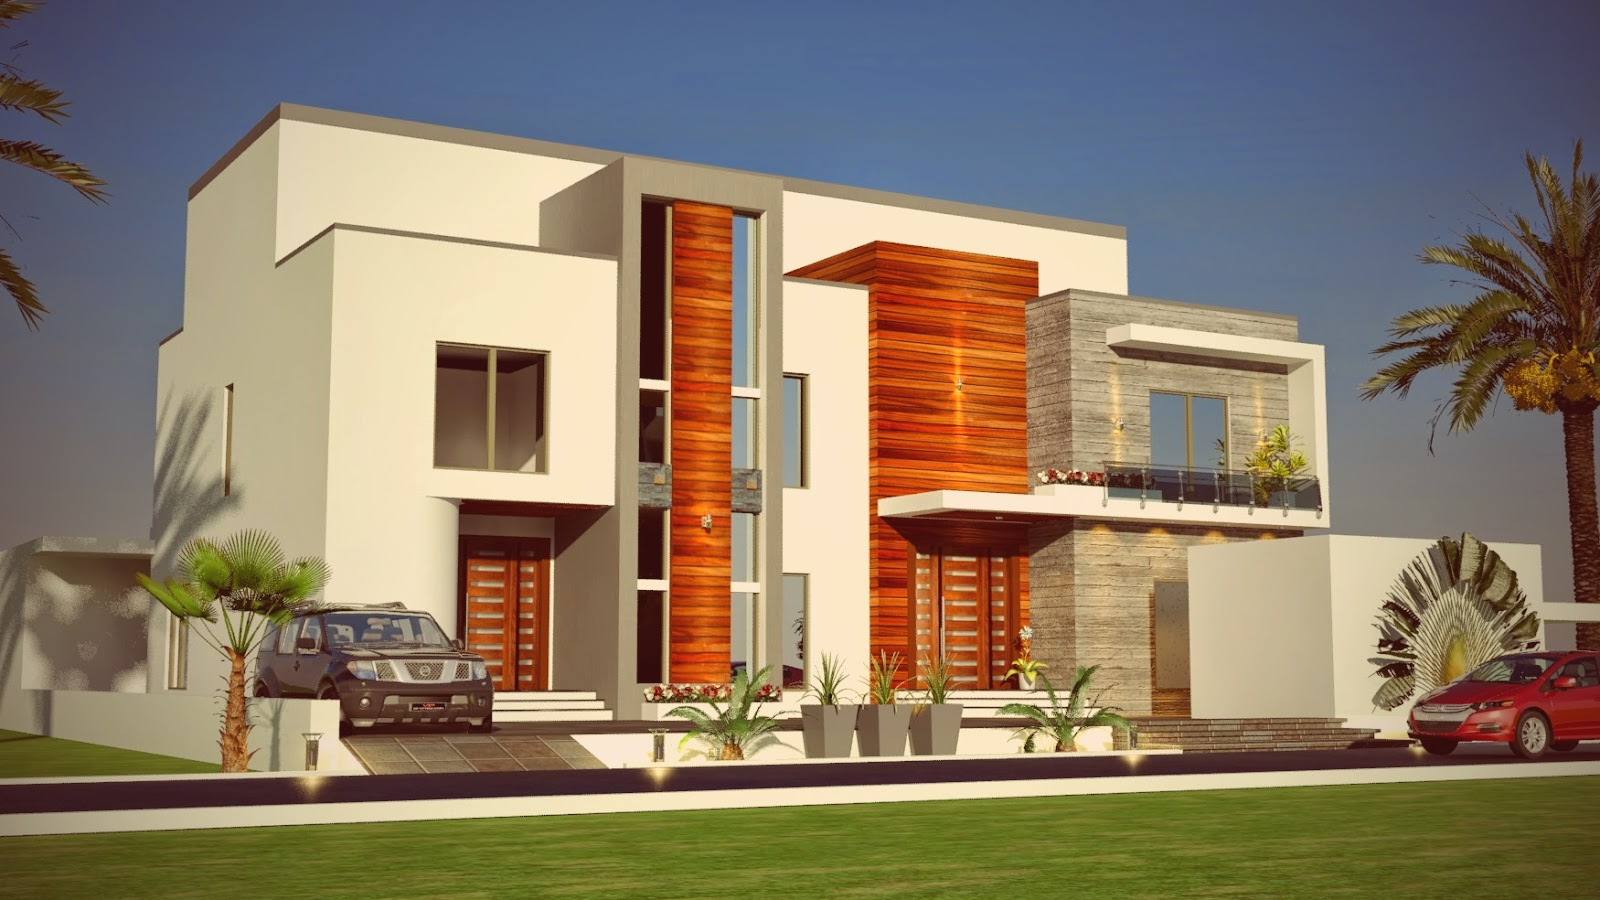 Front Elevation Images Free Download : D elevation of house free download joy studio design